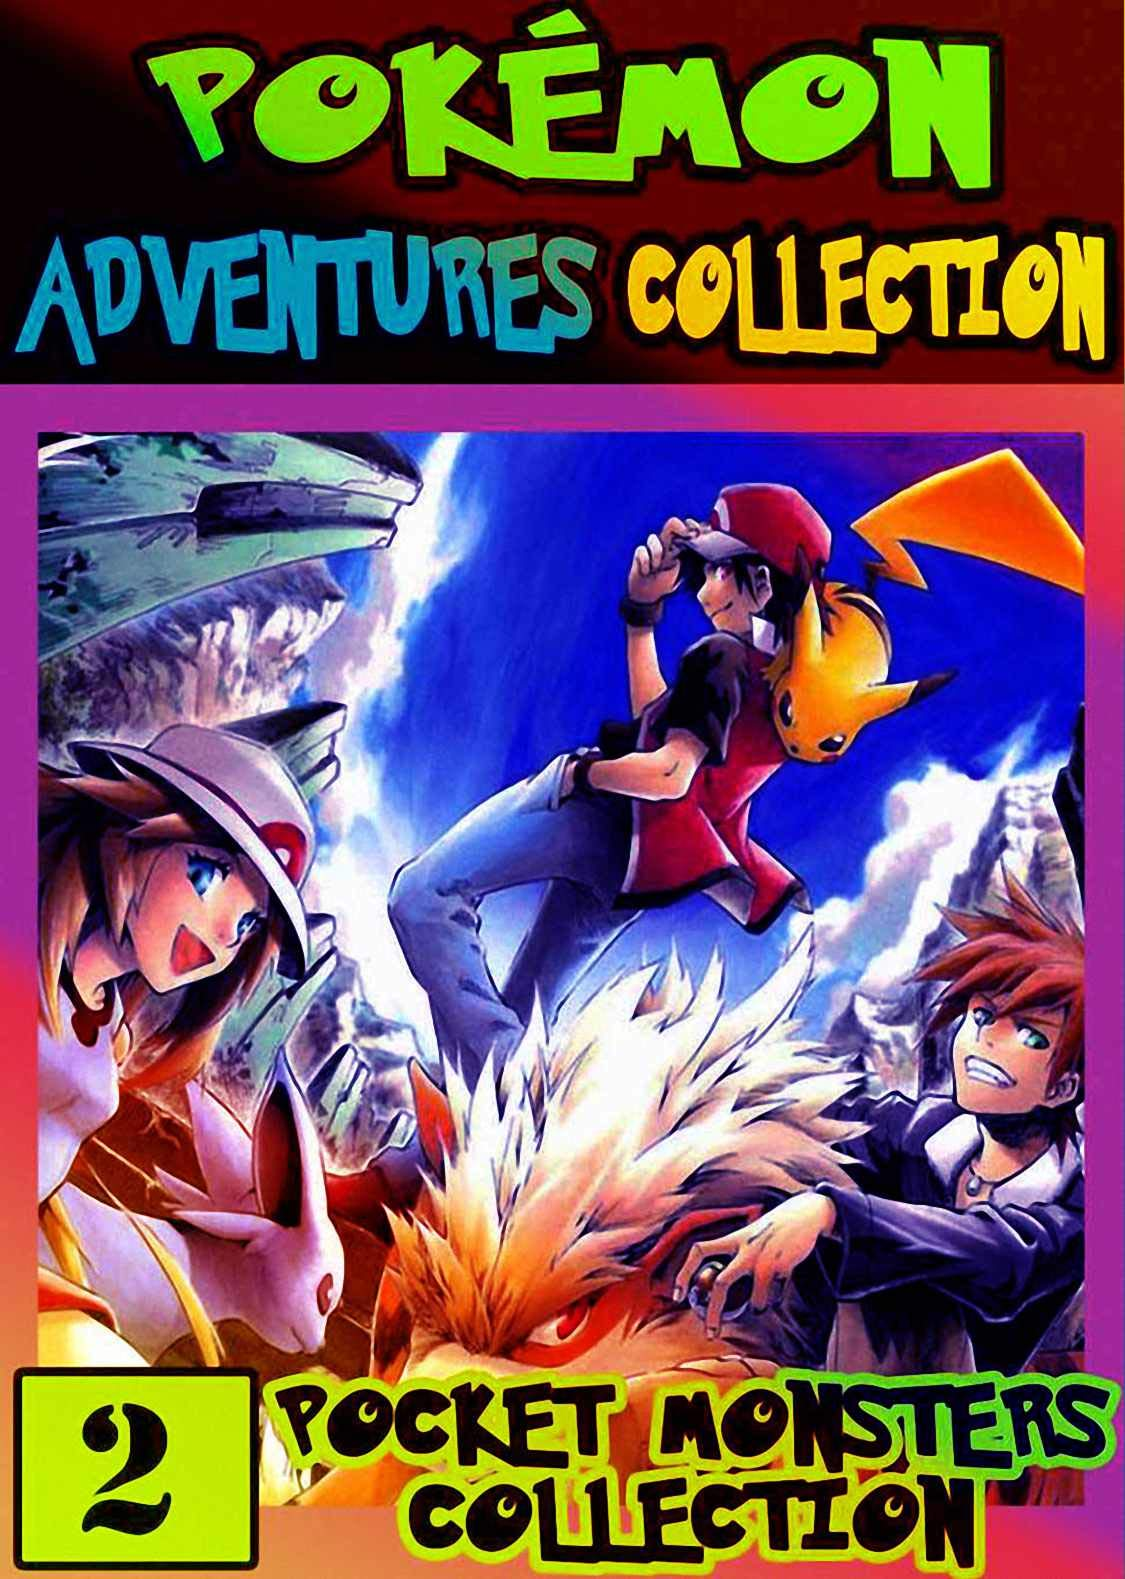 Monsters Collection: Collection Pack 2 - Graphic Novel For Children, Kids Pokemon Manga Pocket Monsters Adventures